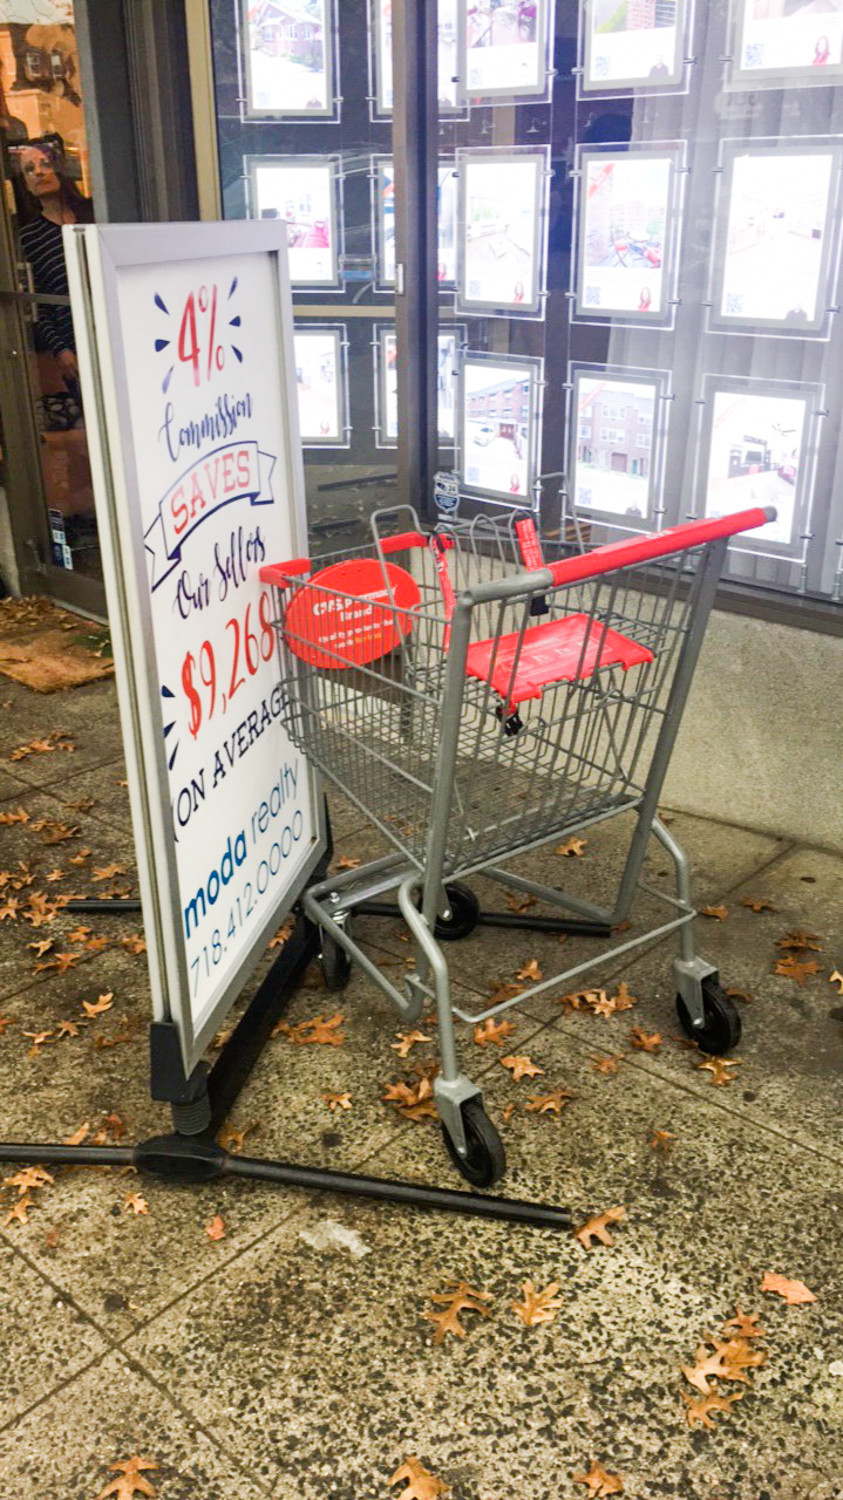 For weeks, managers at Moda Realty believe students have vandalized a sign posted outside the Riverdale Avenue business. One afternoon, they allegedly shoved a shopping cart from a nearby pharmacy into it.